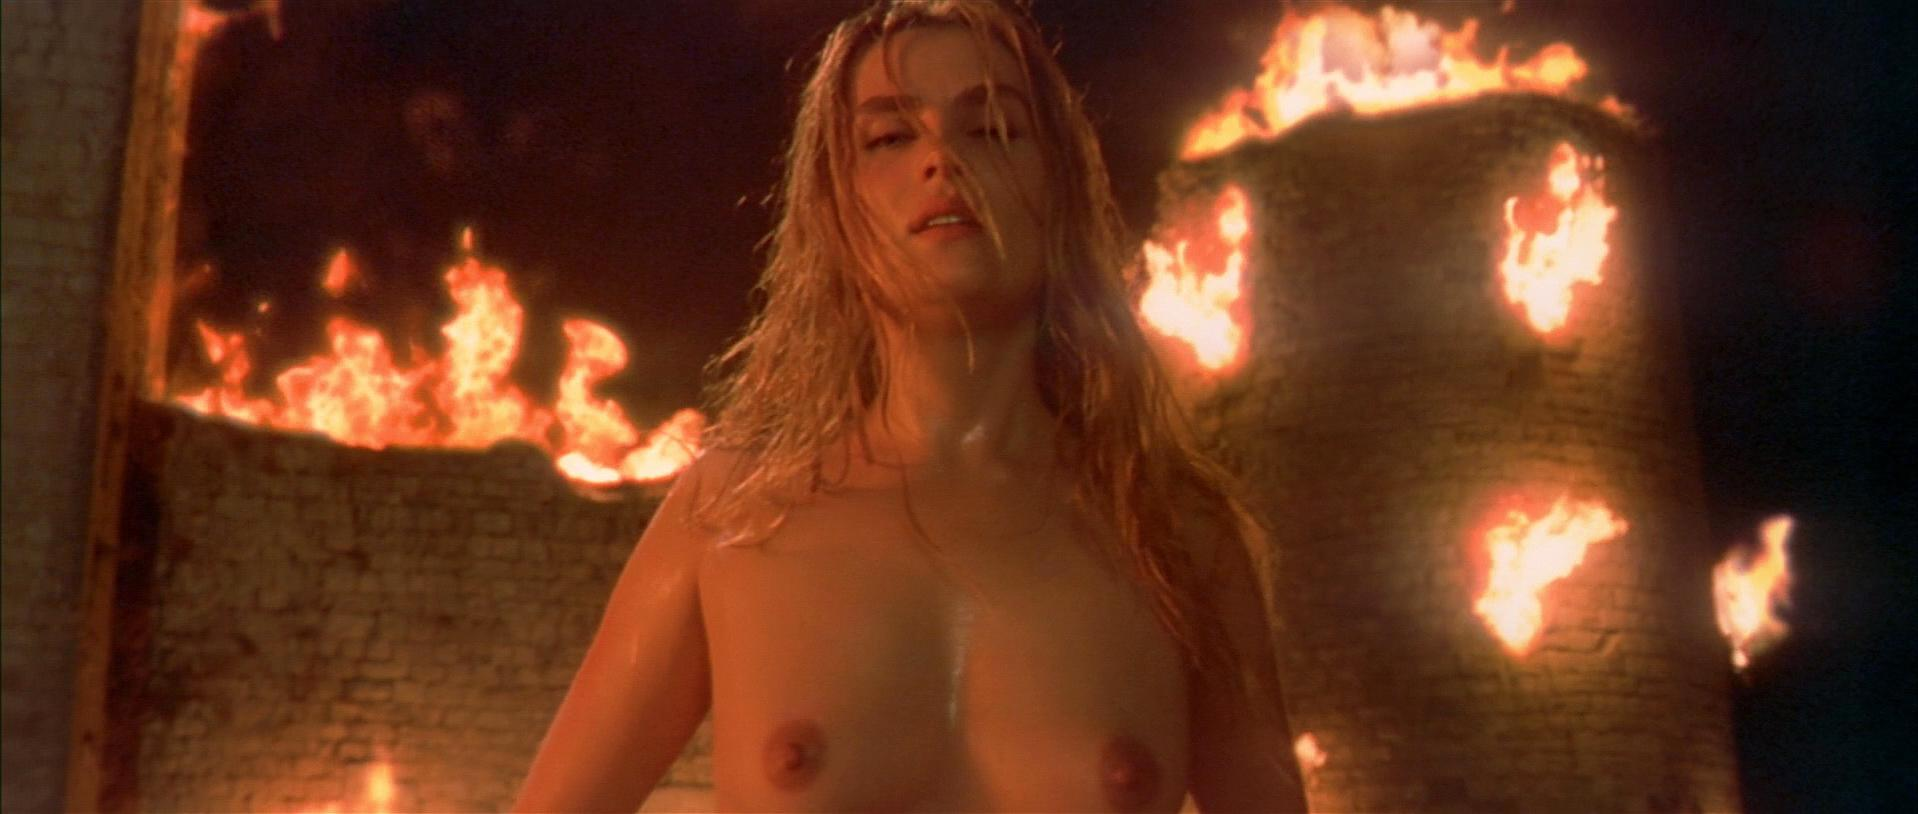 Emmanuelle Seigner nude - The Ninth Gate (1999)